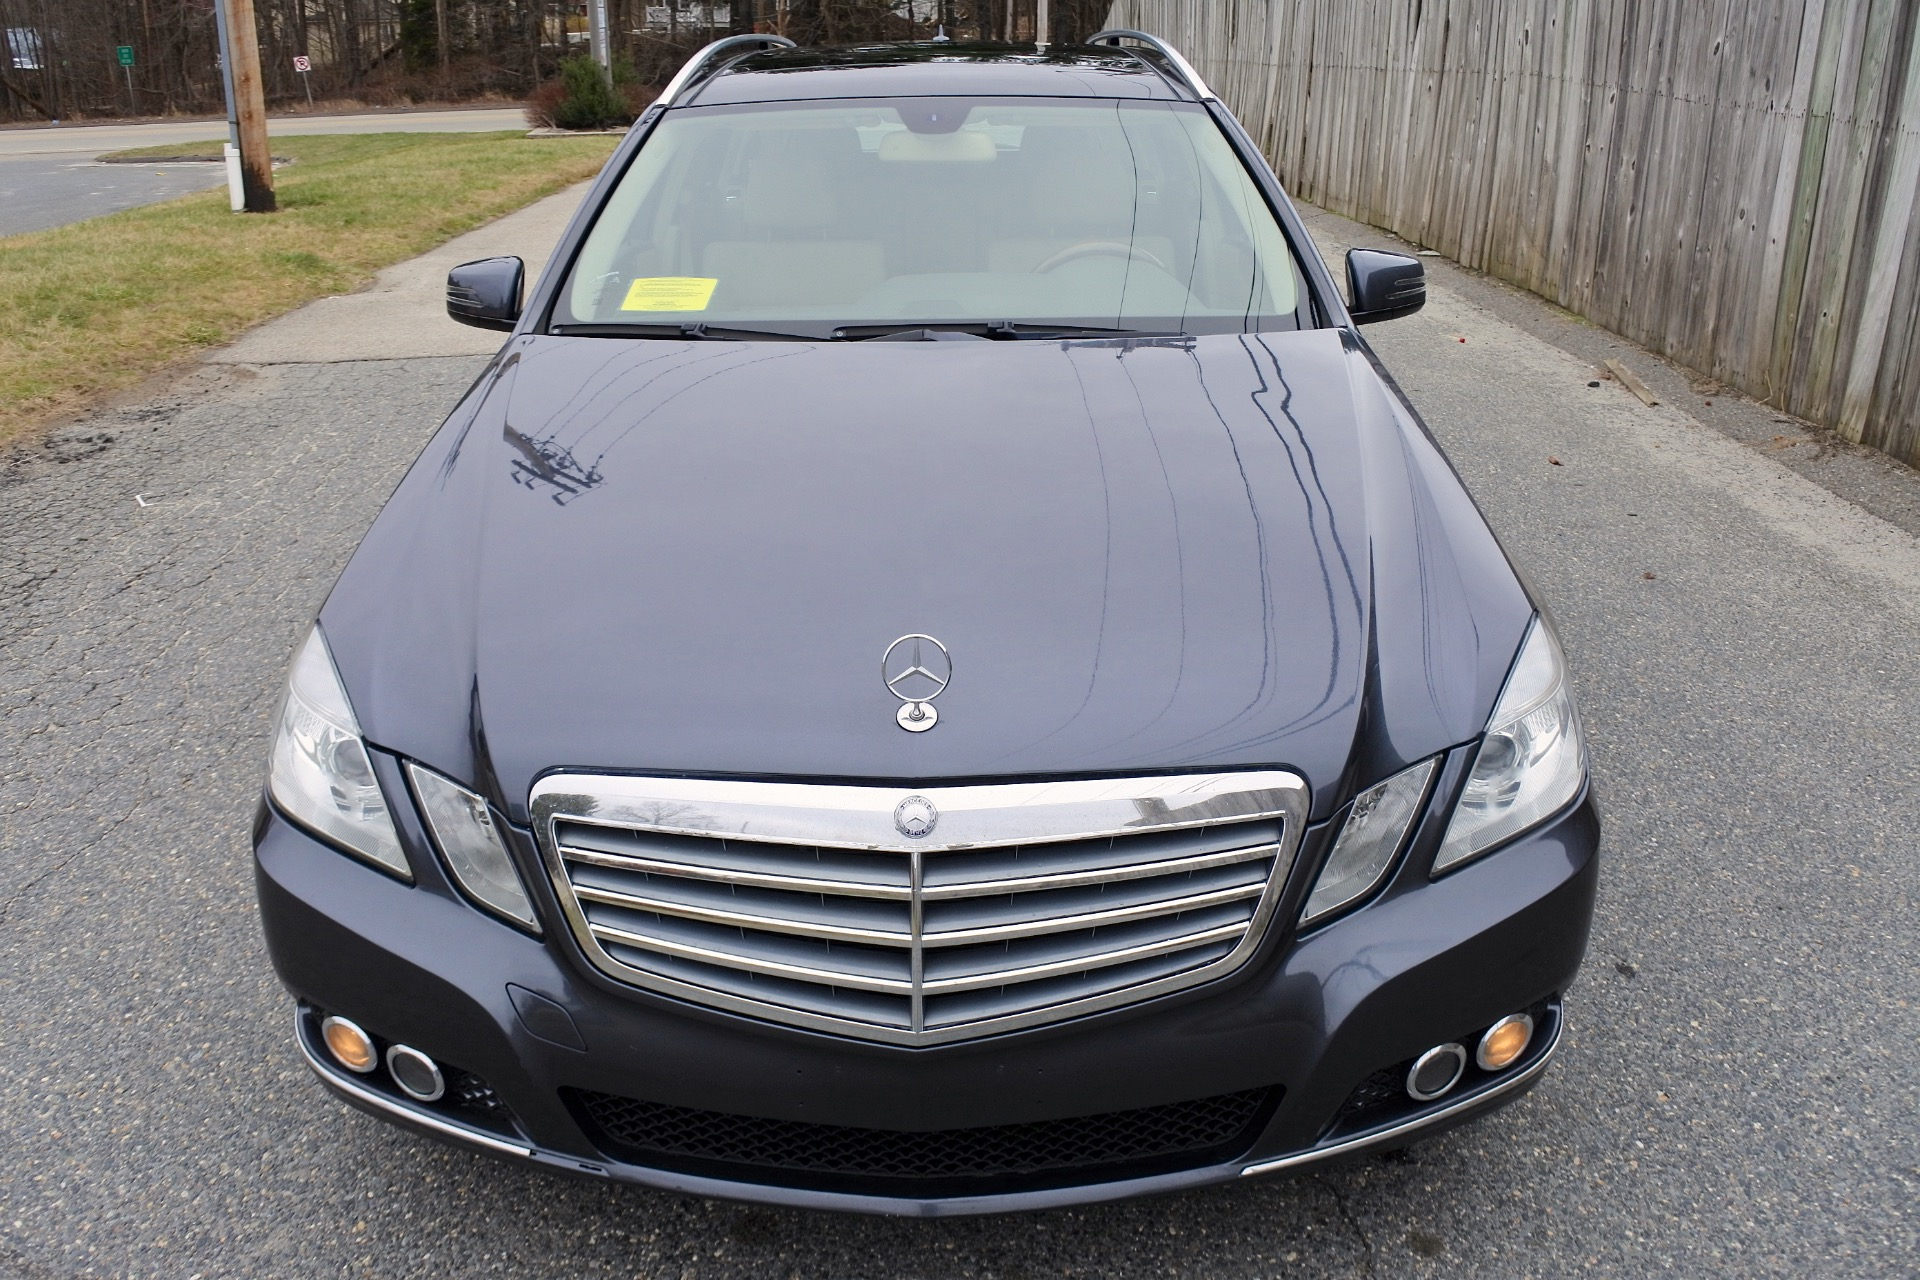 Used 2011 Mercedes-Benz E-Class 4dr Wgn E350 Luxury 4MATIC Used 2011 Mercedes-Benz E-Class 4dr Wgn E350 Luxury 4MATIC for sale  at Metro West Motorcars LLC in Shrewsbury MA 8